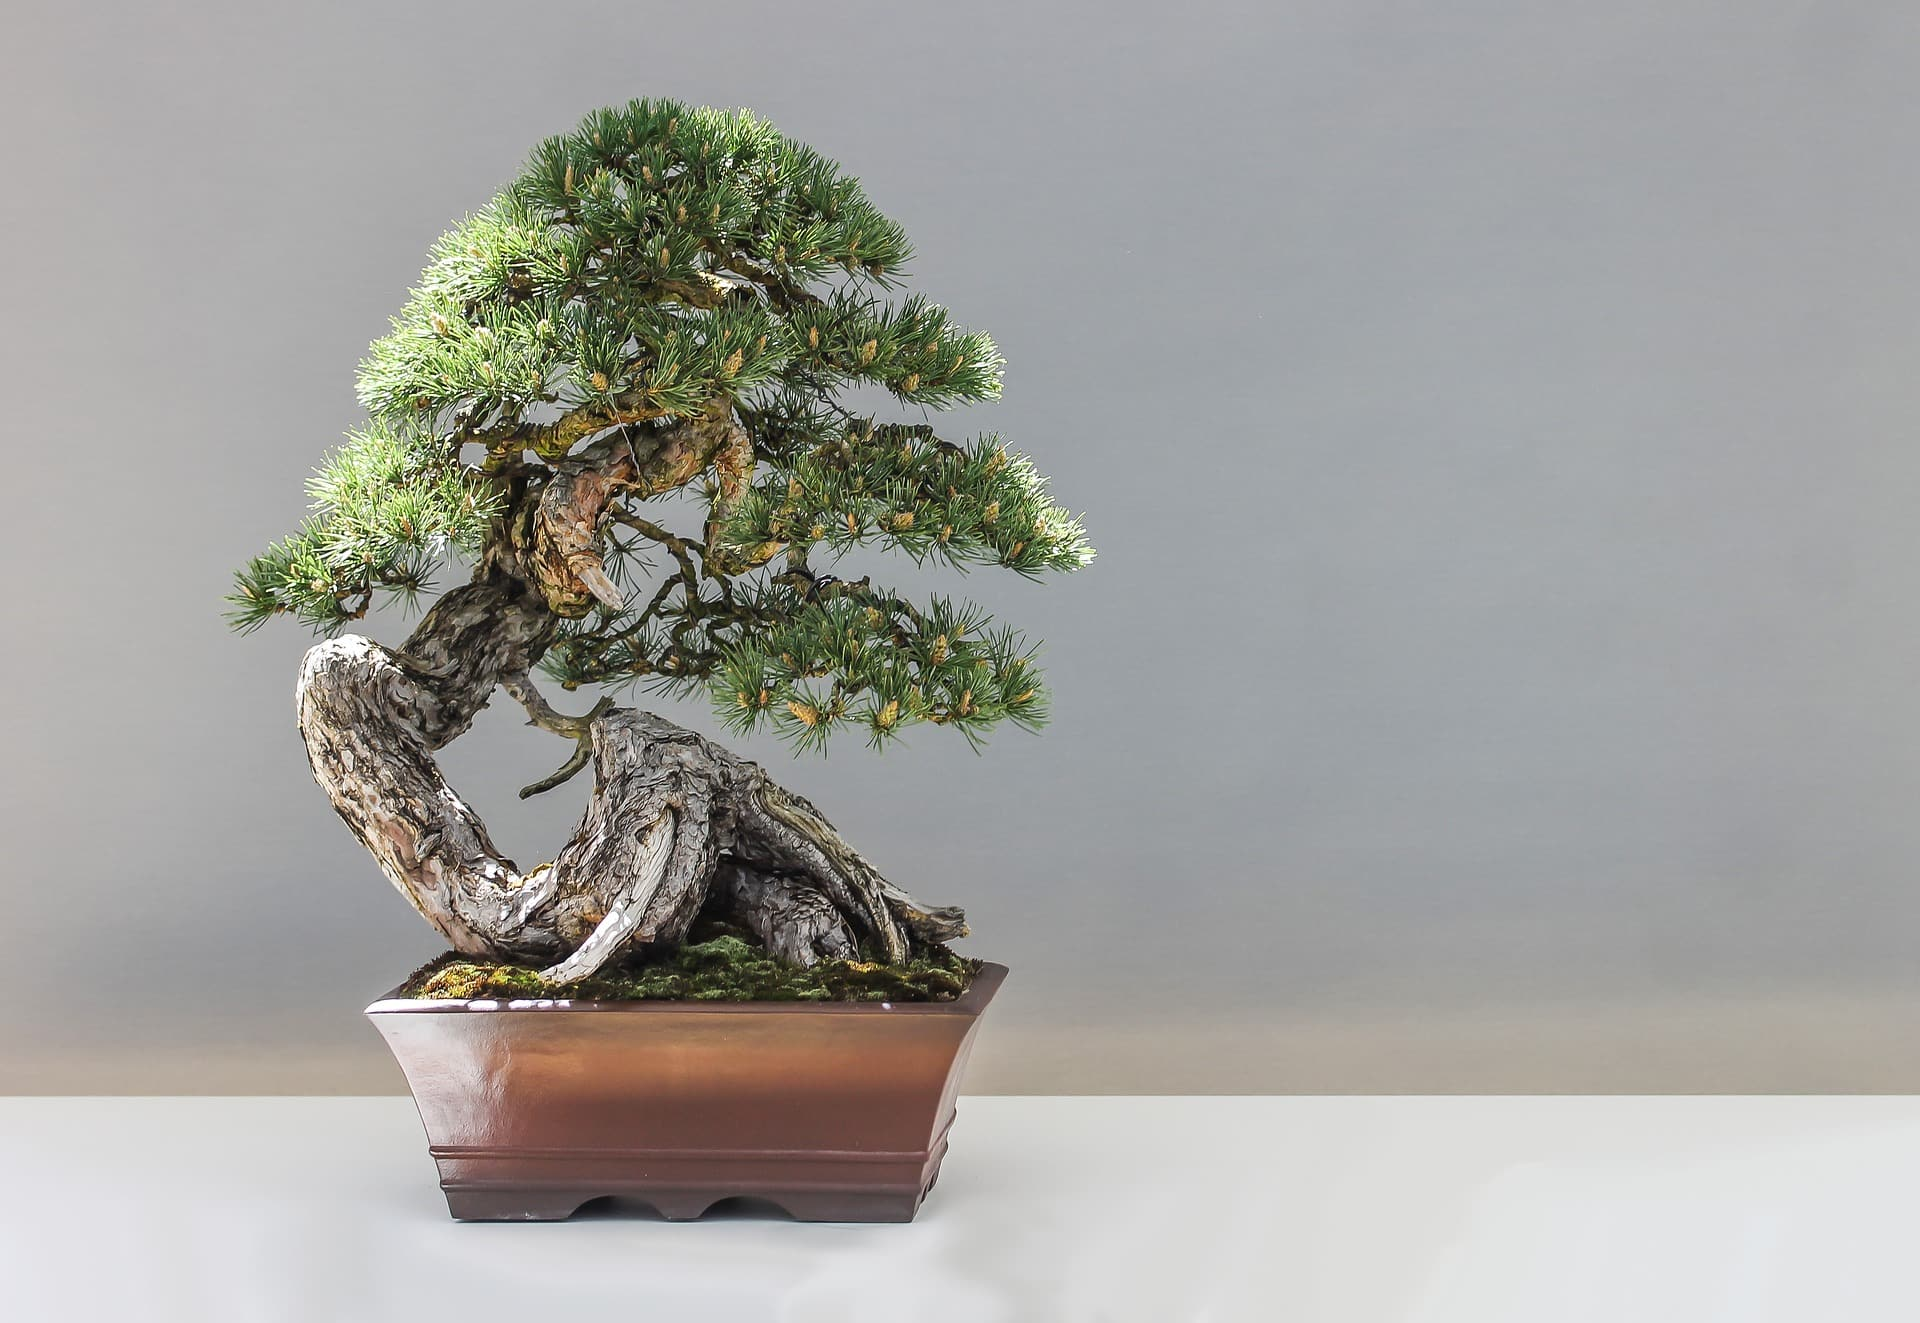 Well done pine bonsai